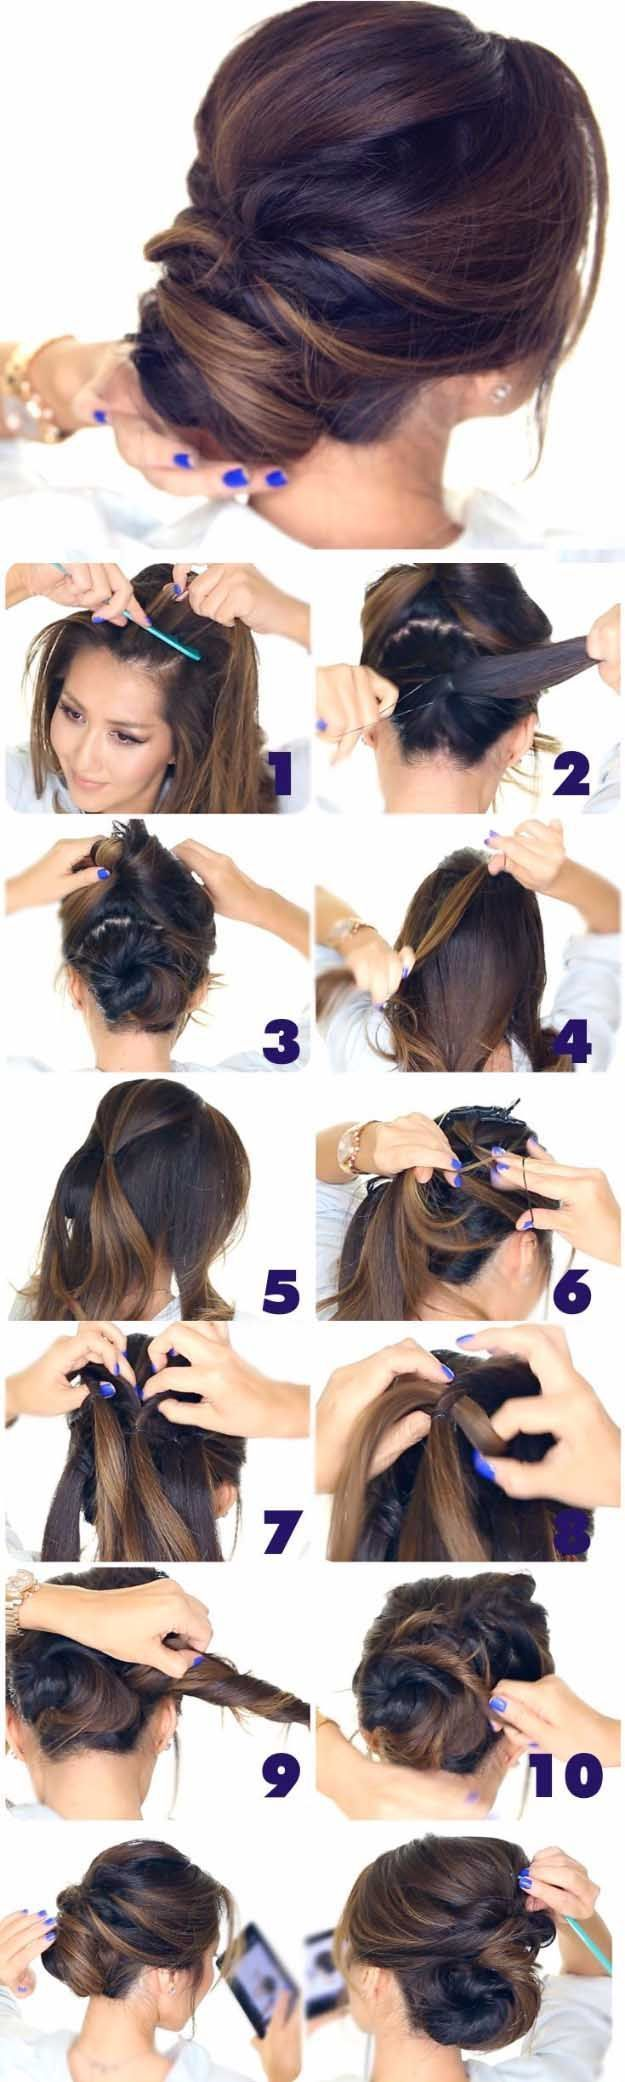 Best Hairstyles for Brides - 5 Minute Elegant Chignon- Amazing Hair Styles and Looks for Half Up Medium Styles, Updo With Long Hair, Short Curls, Vintage Looks with Veil, Headpieces, or With Tiara - Wedding Looks for Girls With Round Faces - Awesome Simpl